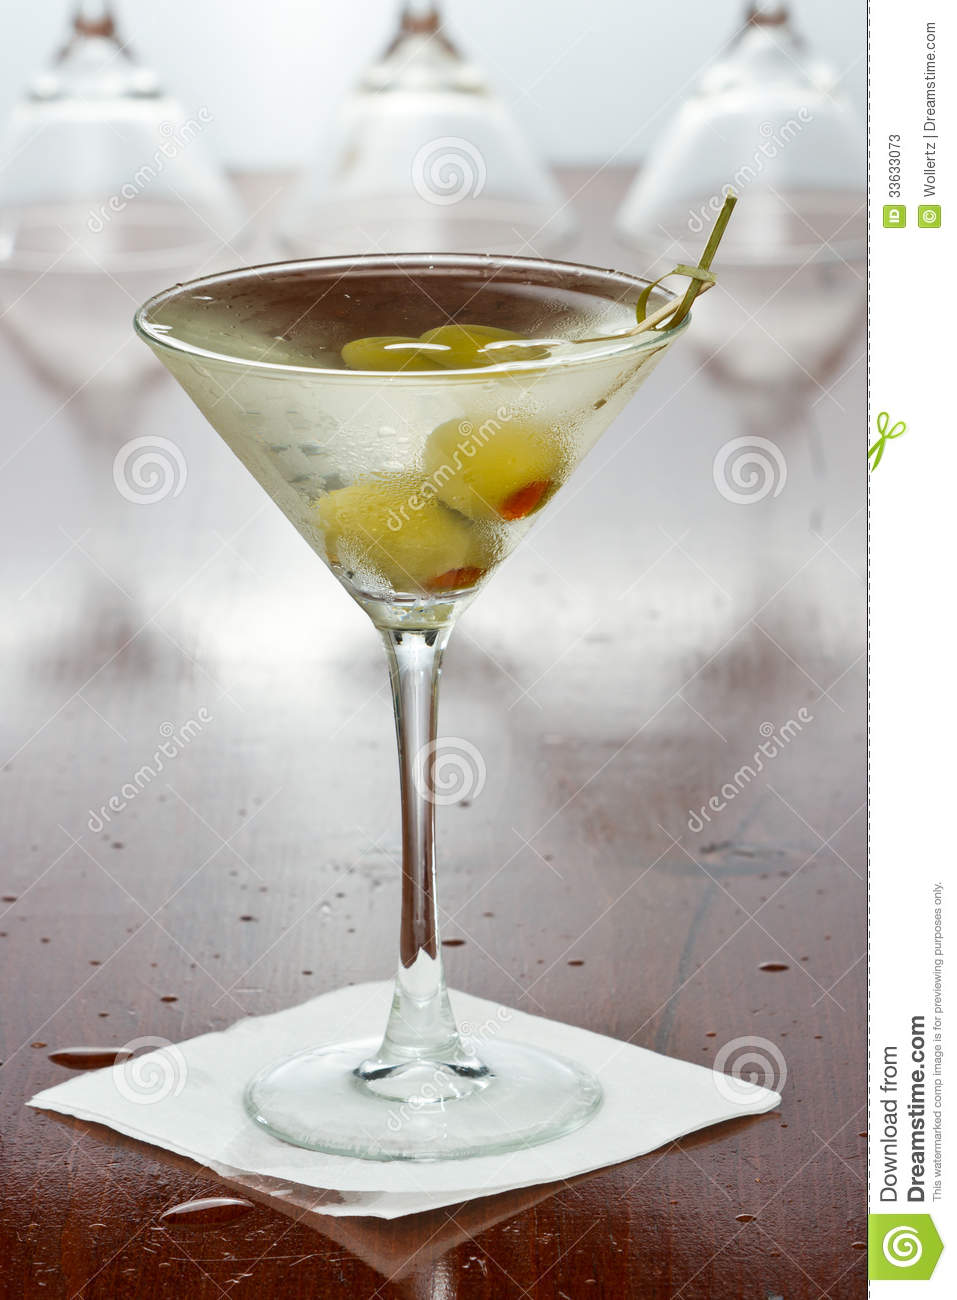 vodka martini dirty vodka martini stock photos image 33633073 12458